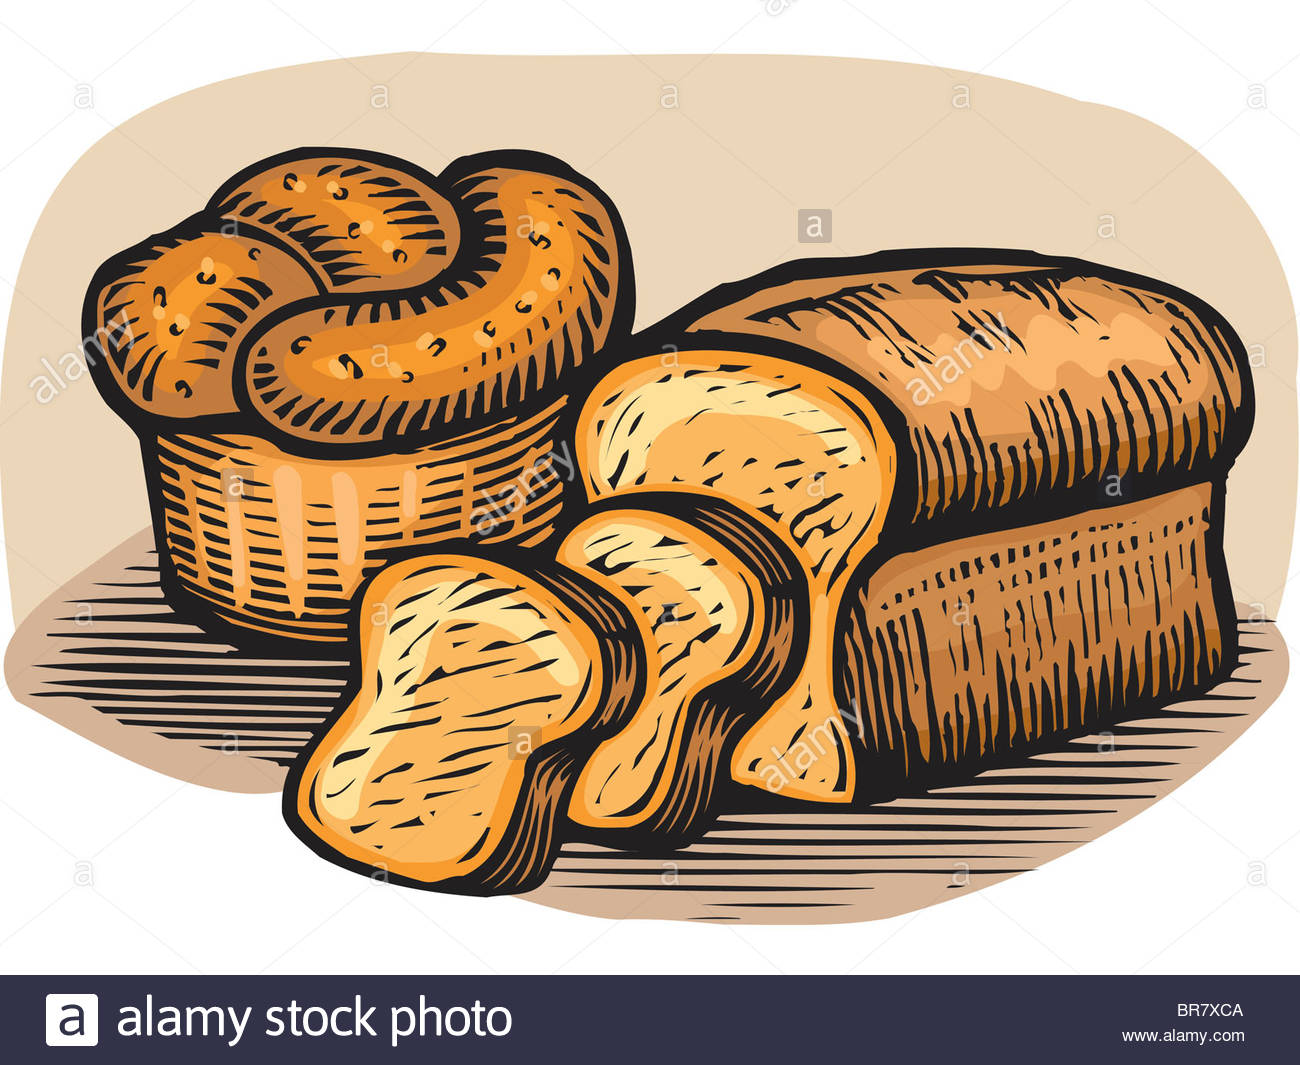 1300x1065 A Drawing Of Loaves Of Bread Stock Photo 31521850